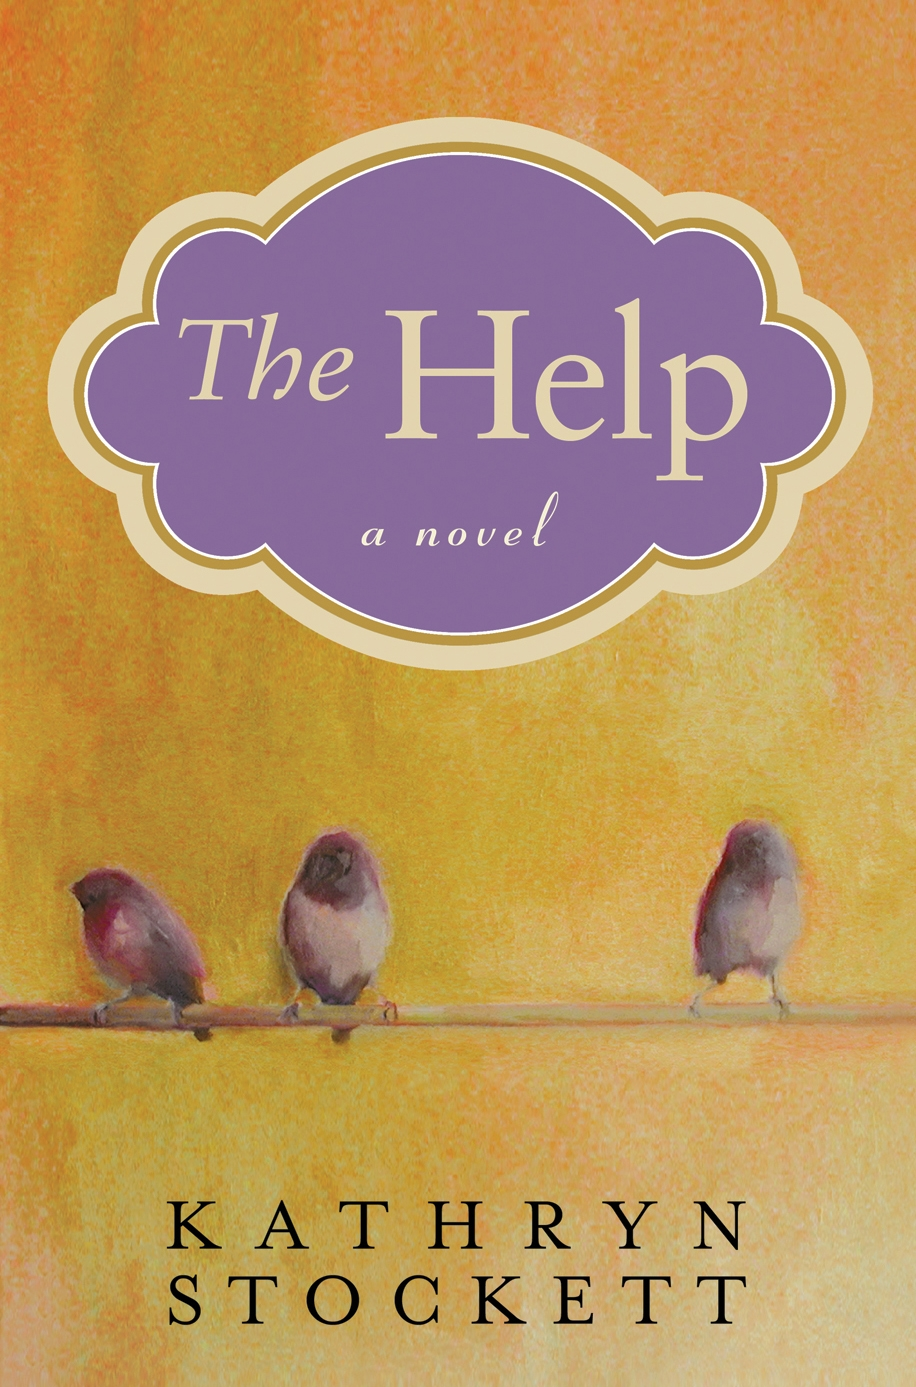 kathryn stockett the help essay